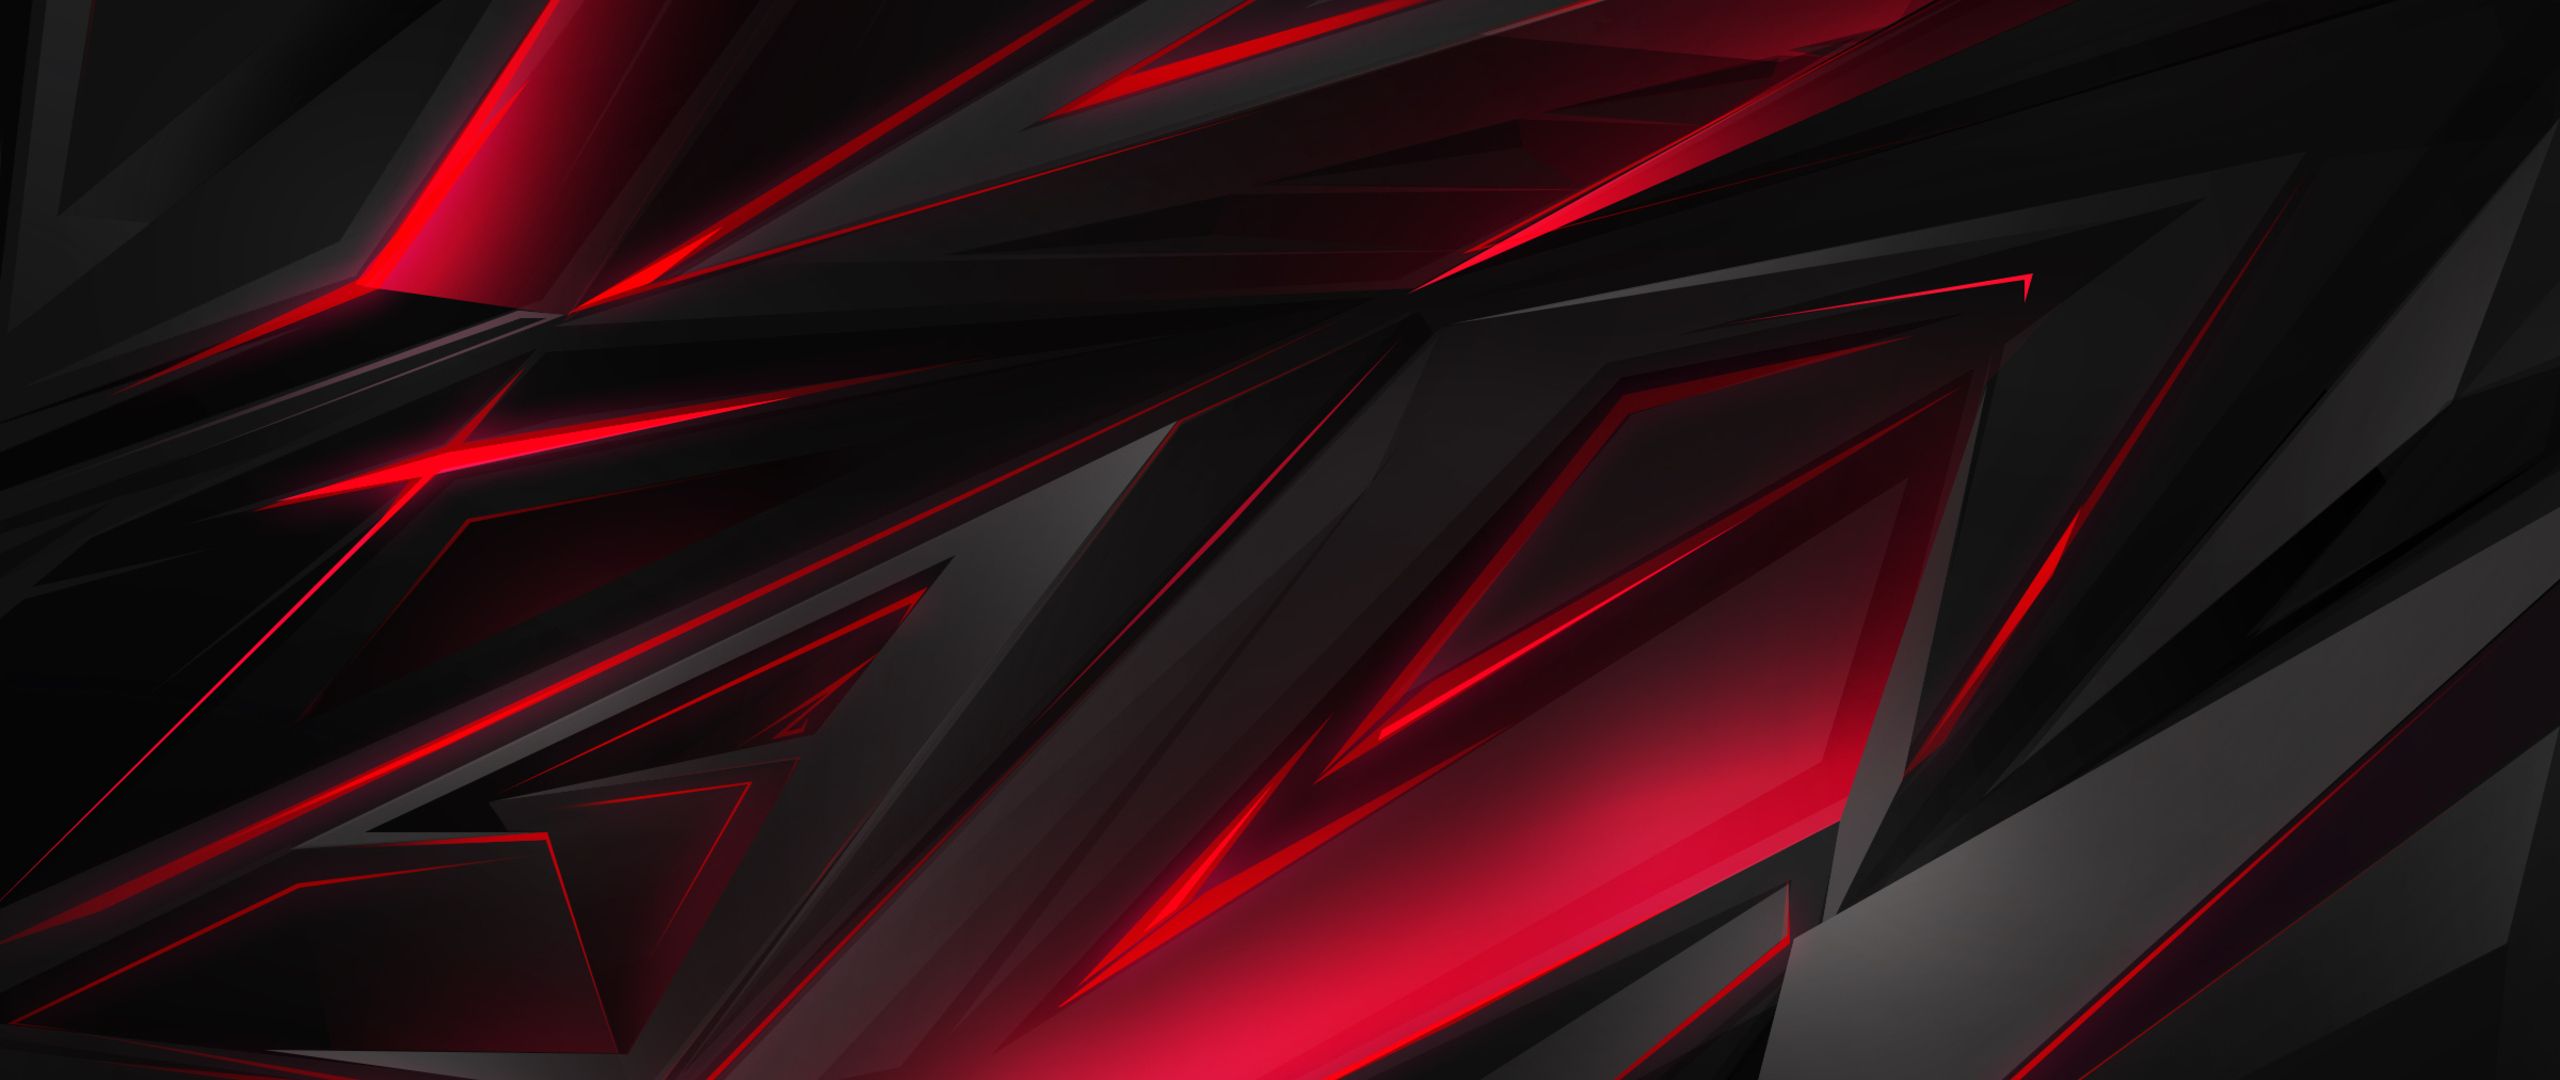 2560x1080 Polygonal Abstract Red Dark Background 2560x1080